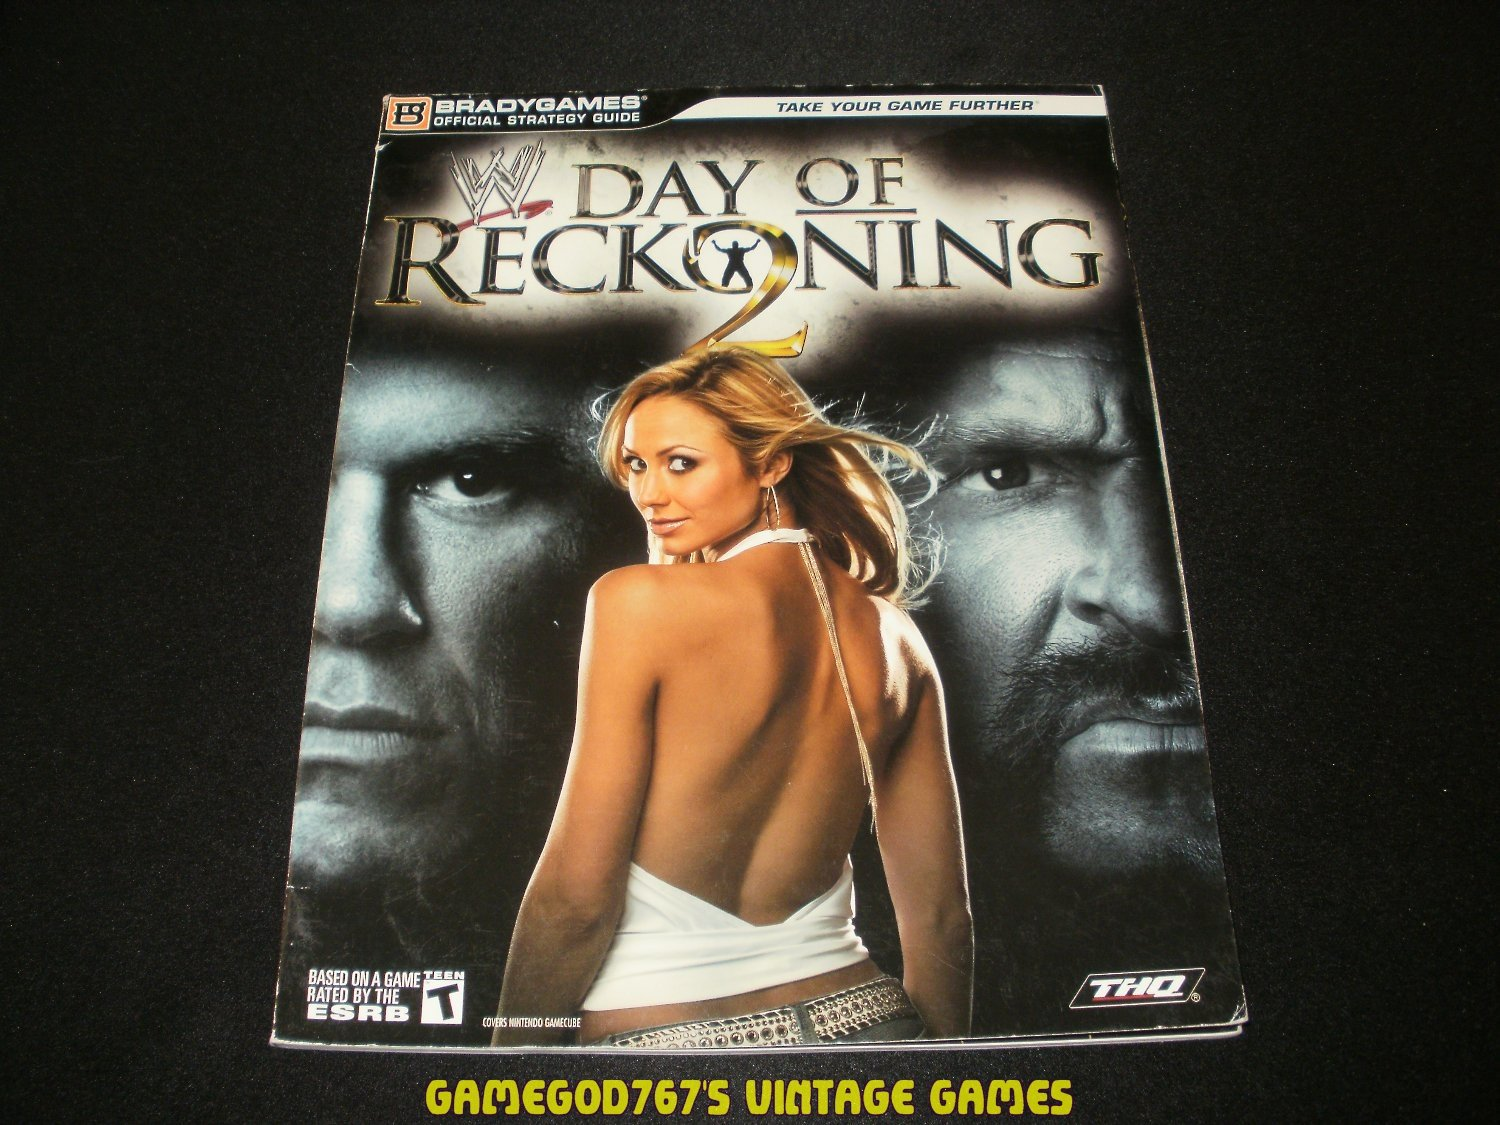 WWE Day of Reckoning 2 Official Strategy Guide - Bradygames (2005) - Paperback